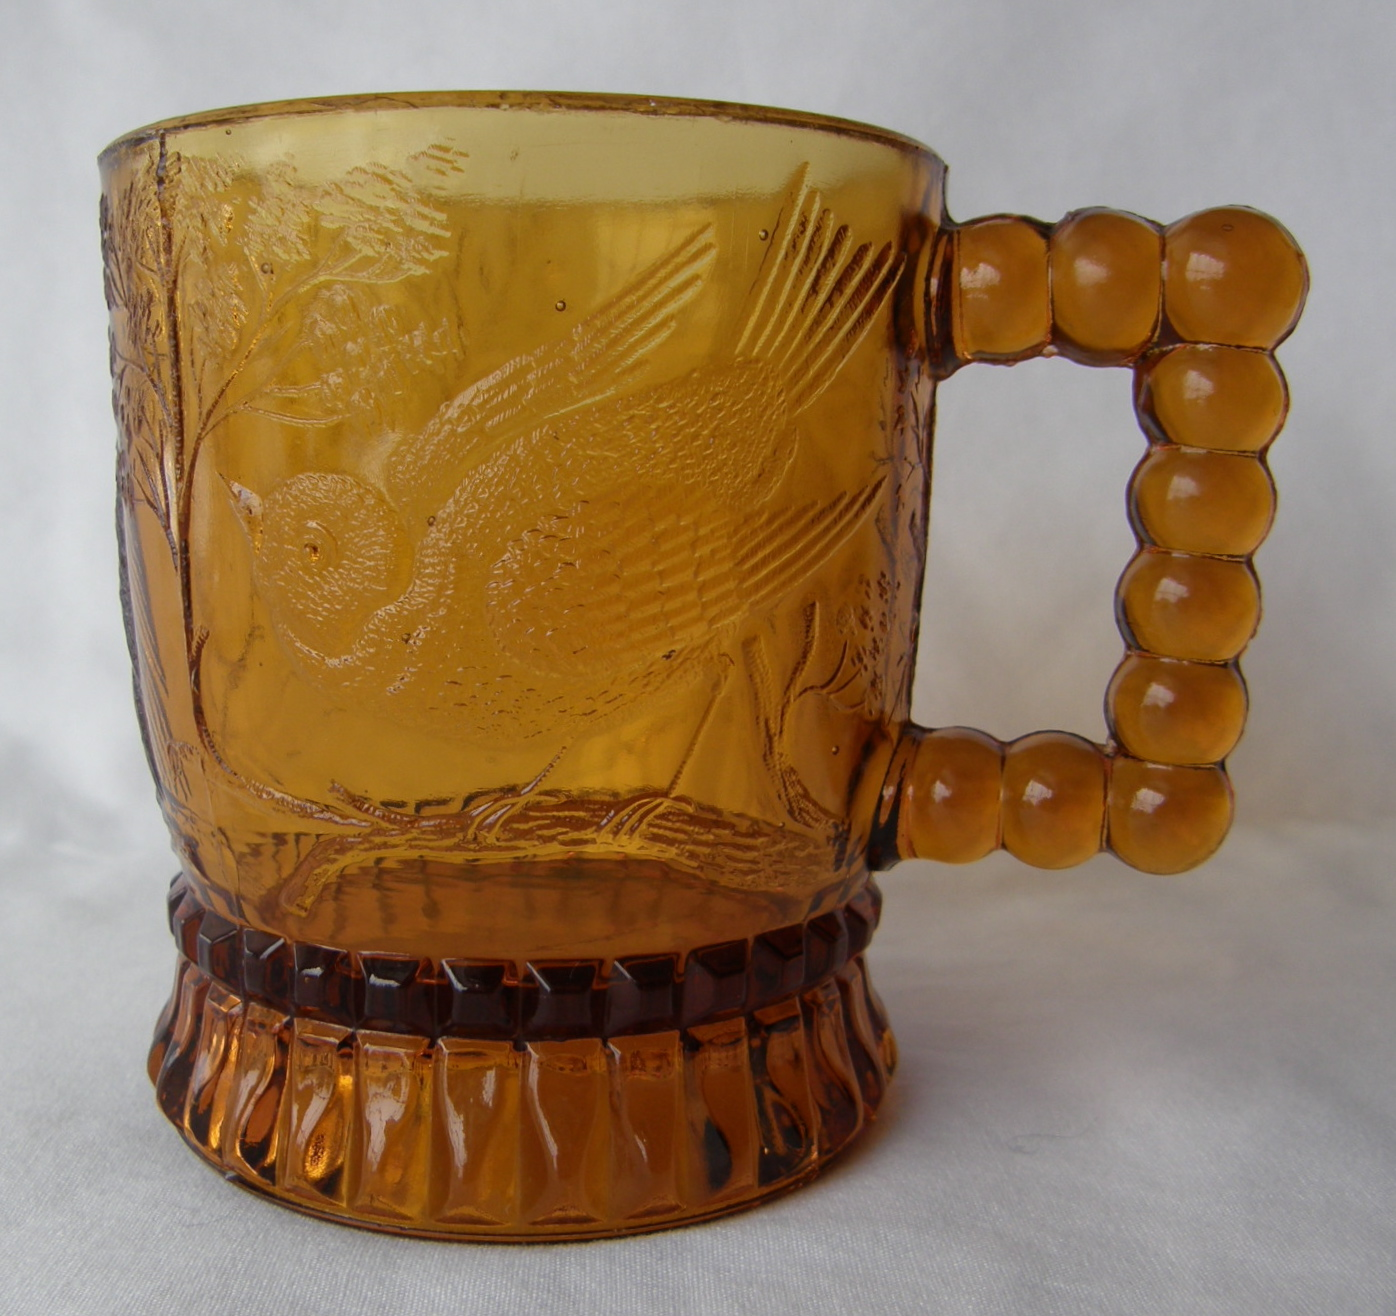 """Bird on a Branch (Size: 2-7/8"""" dia. x 3-3/8"""" ht.; Color: Amber) To the left of the beaded handle, the sculpting shows a crouching song bird perched on a branch."""